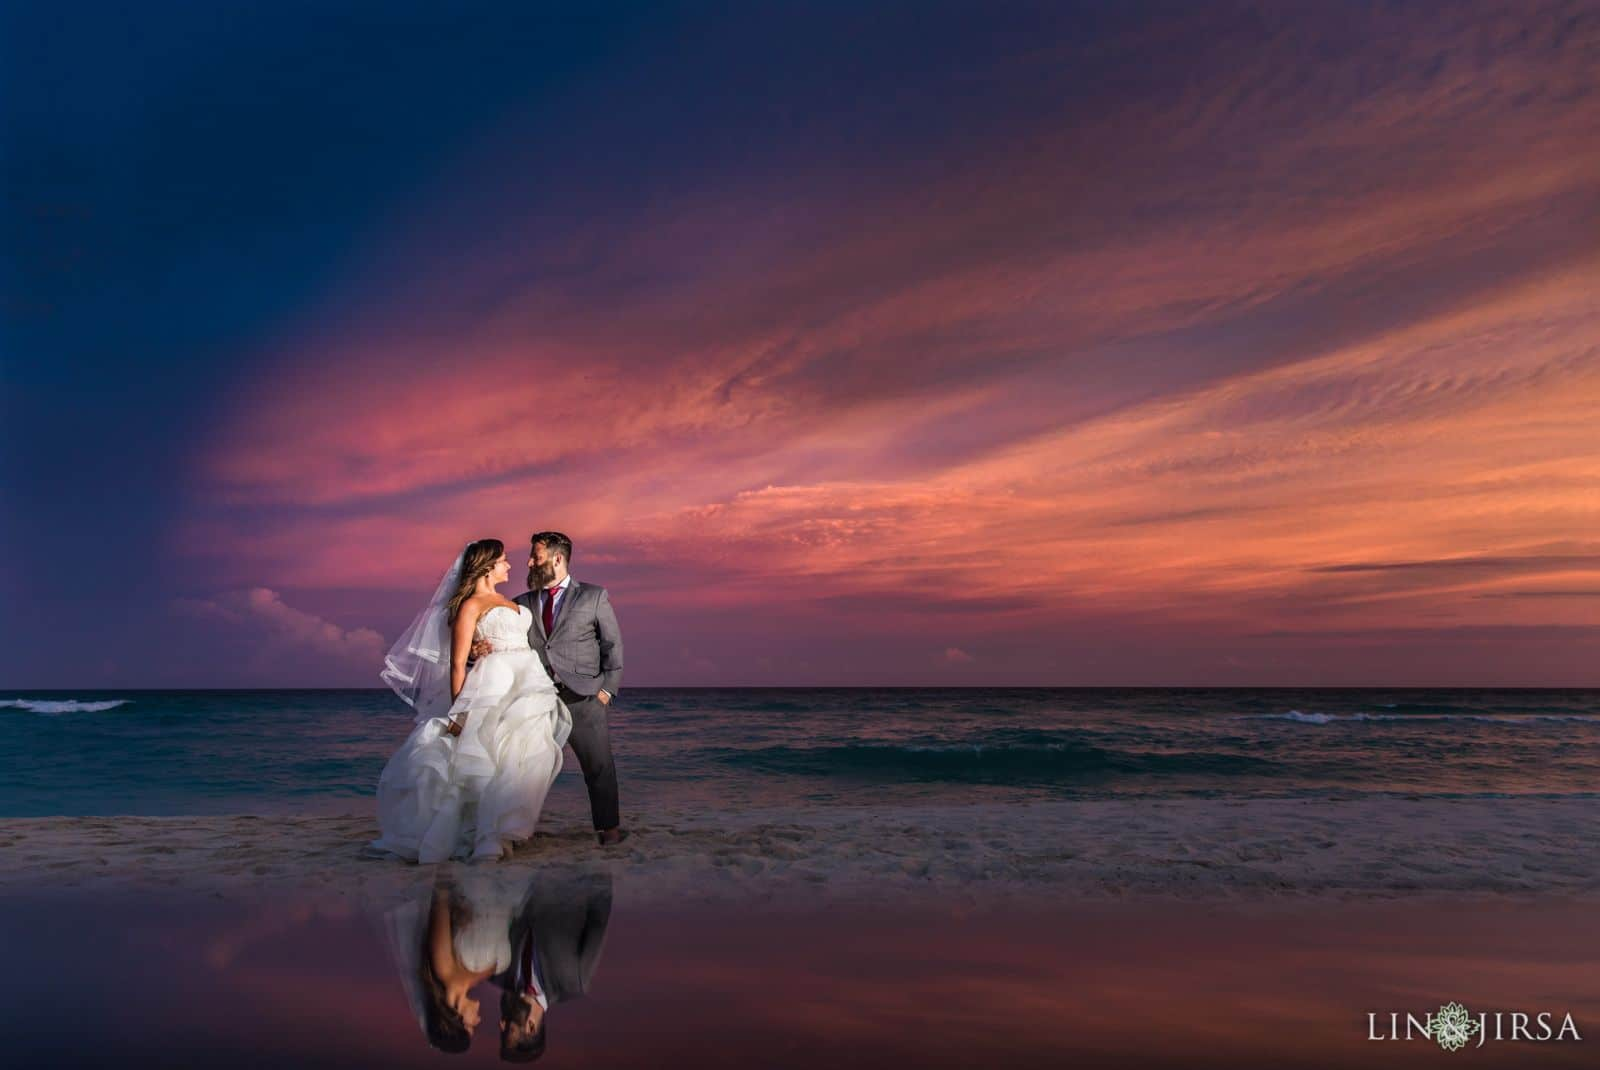 negative space photography couple reflected on beach at sunset